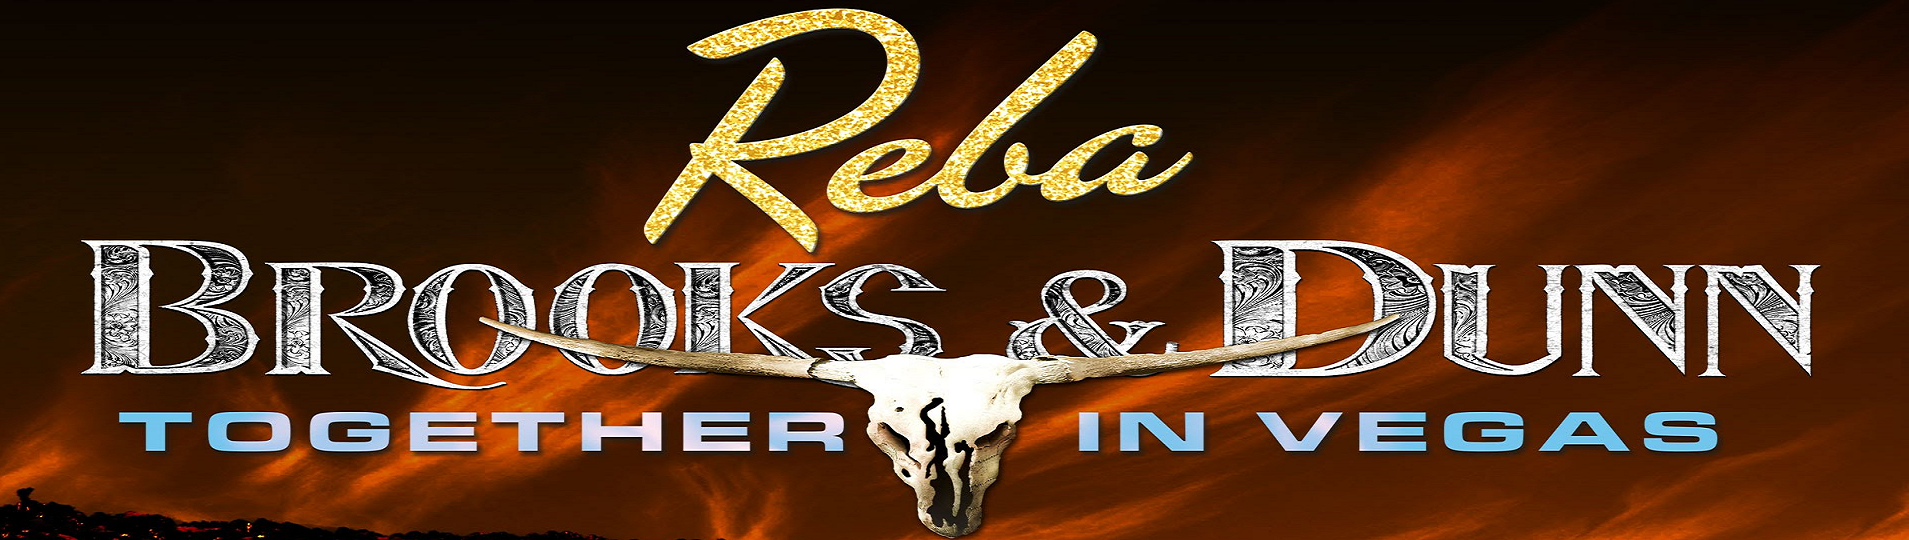 "Country music fans will be able to enjoy more of their favorite trio as Reba McEntire teams up once again with the acclaimed country music duo Brooks & Dunn for a new residency at the Caesar's Palace Coliseum. Last year the trio sold out back to back shows to an audience of over 38,000 fans leaving Las Vegas hungry for more. With a demand this strong, it was only a matter of time before these country music legends came back to Sin City. ""Together in Vegas"" will feature musicians from both Reba and Brooks & Dunn's touring groups. 10 musicians total will share the stage with the trio as they perform their biggest hits to include ""Neon Moon"" and ""Going Out Like That."""